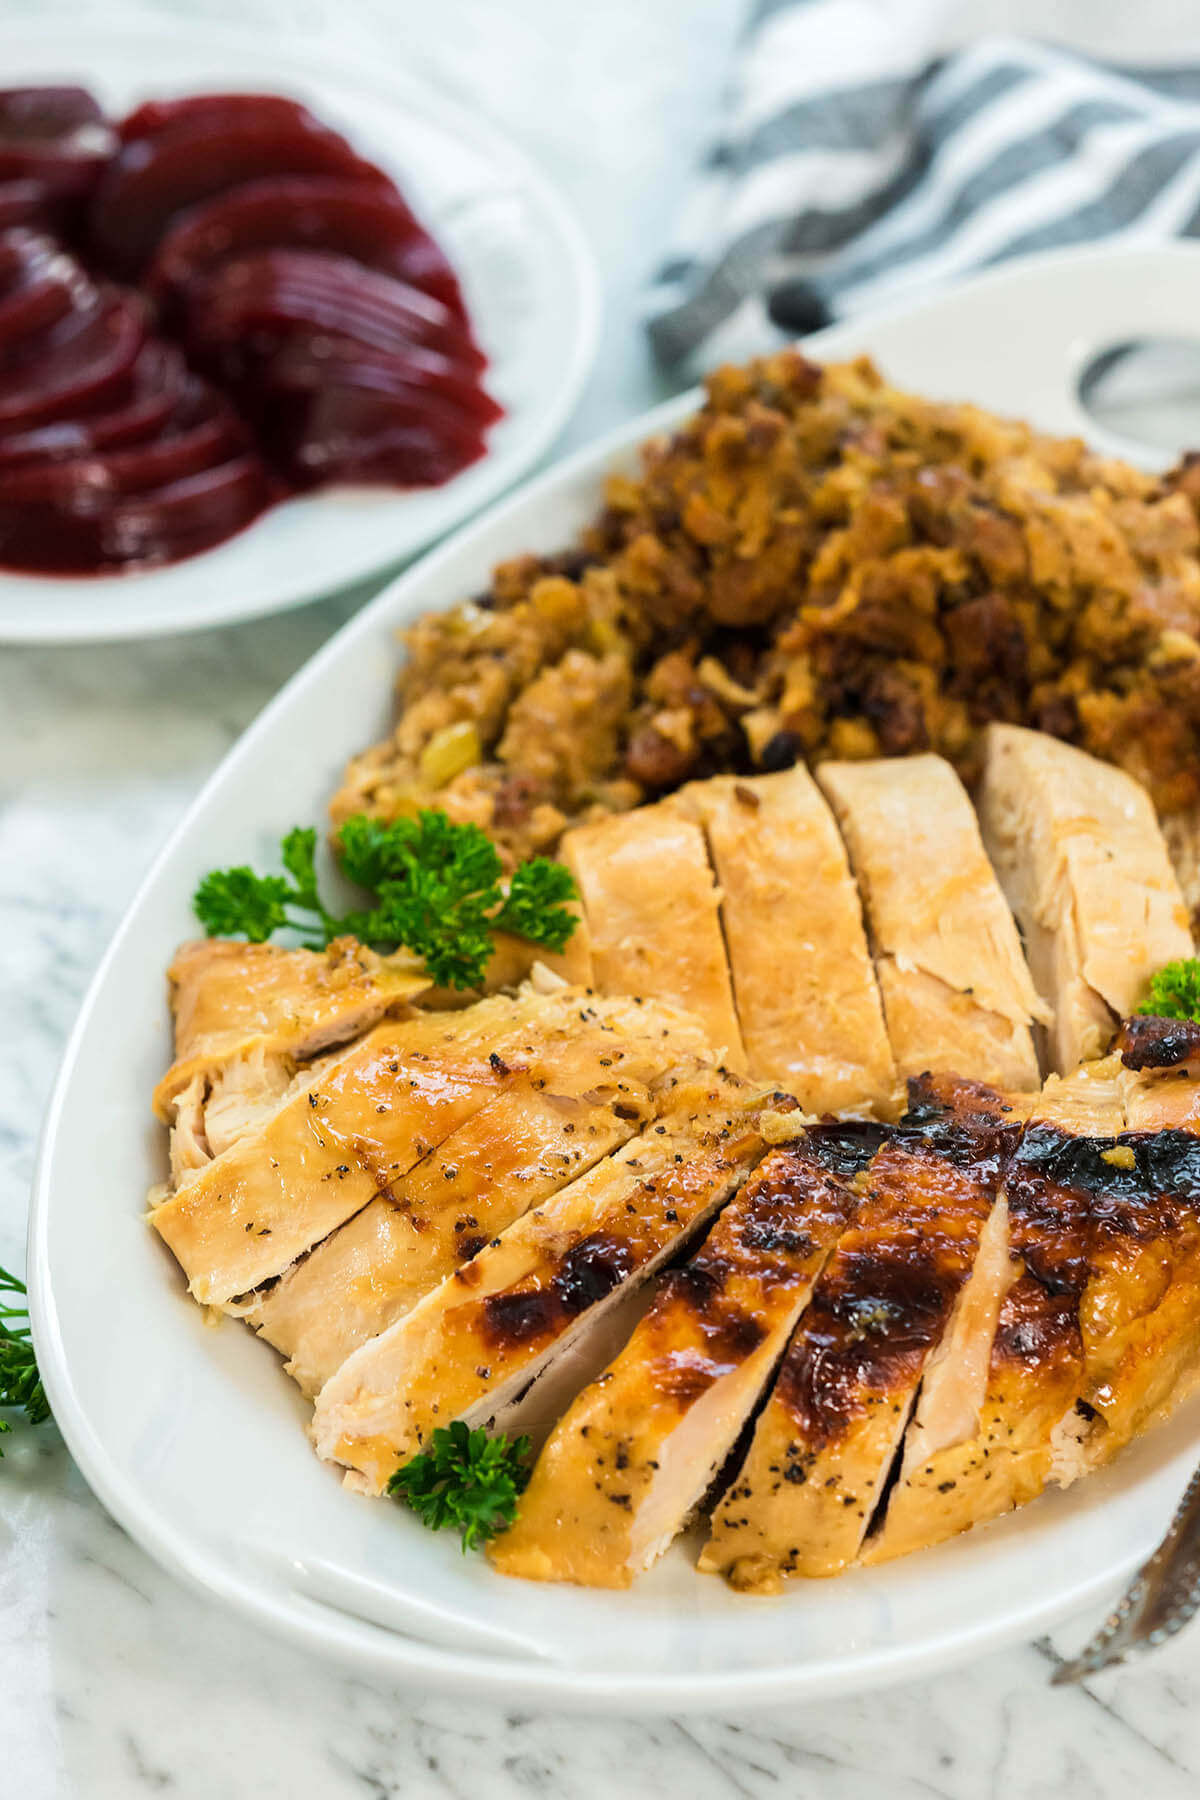 A platter filled with sliced turkey breast and stuffing.